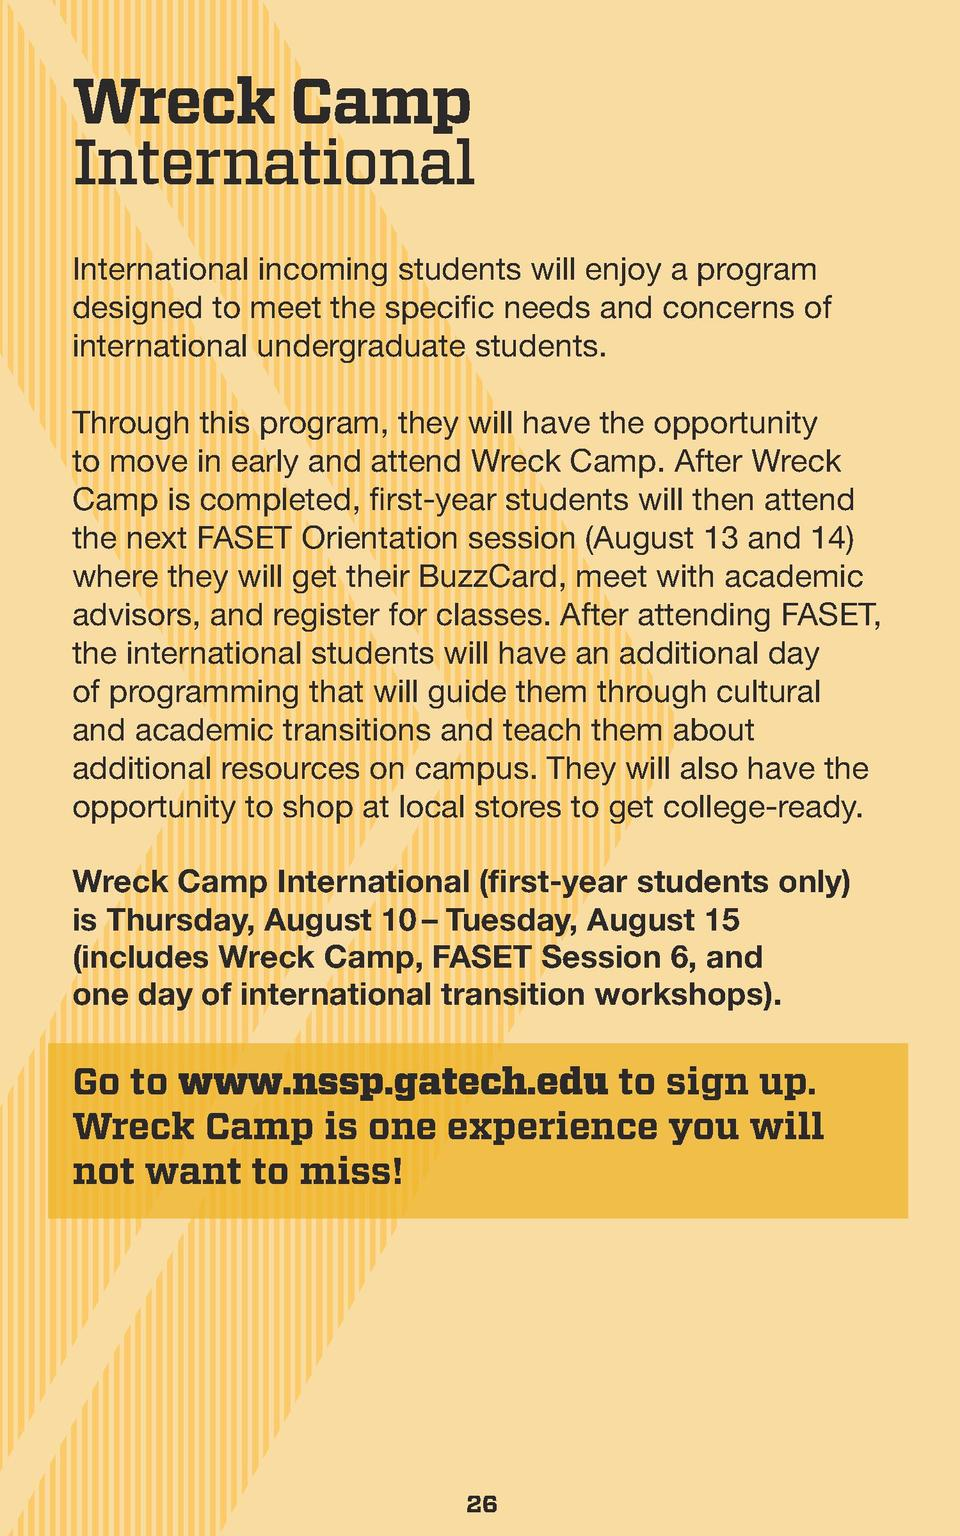 Wreck Camp International International incoming students will enjoy a program designed to meet the specific needs and conc...